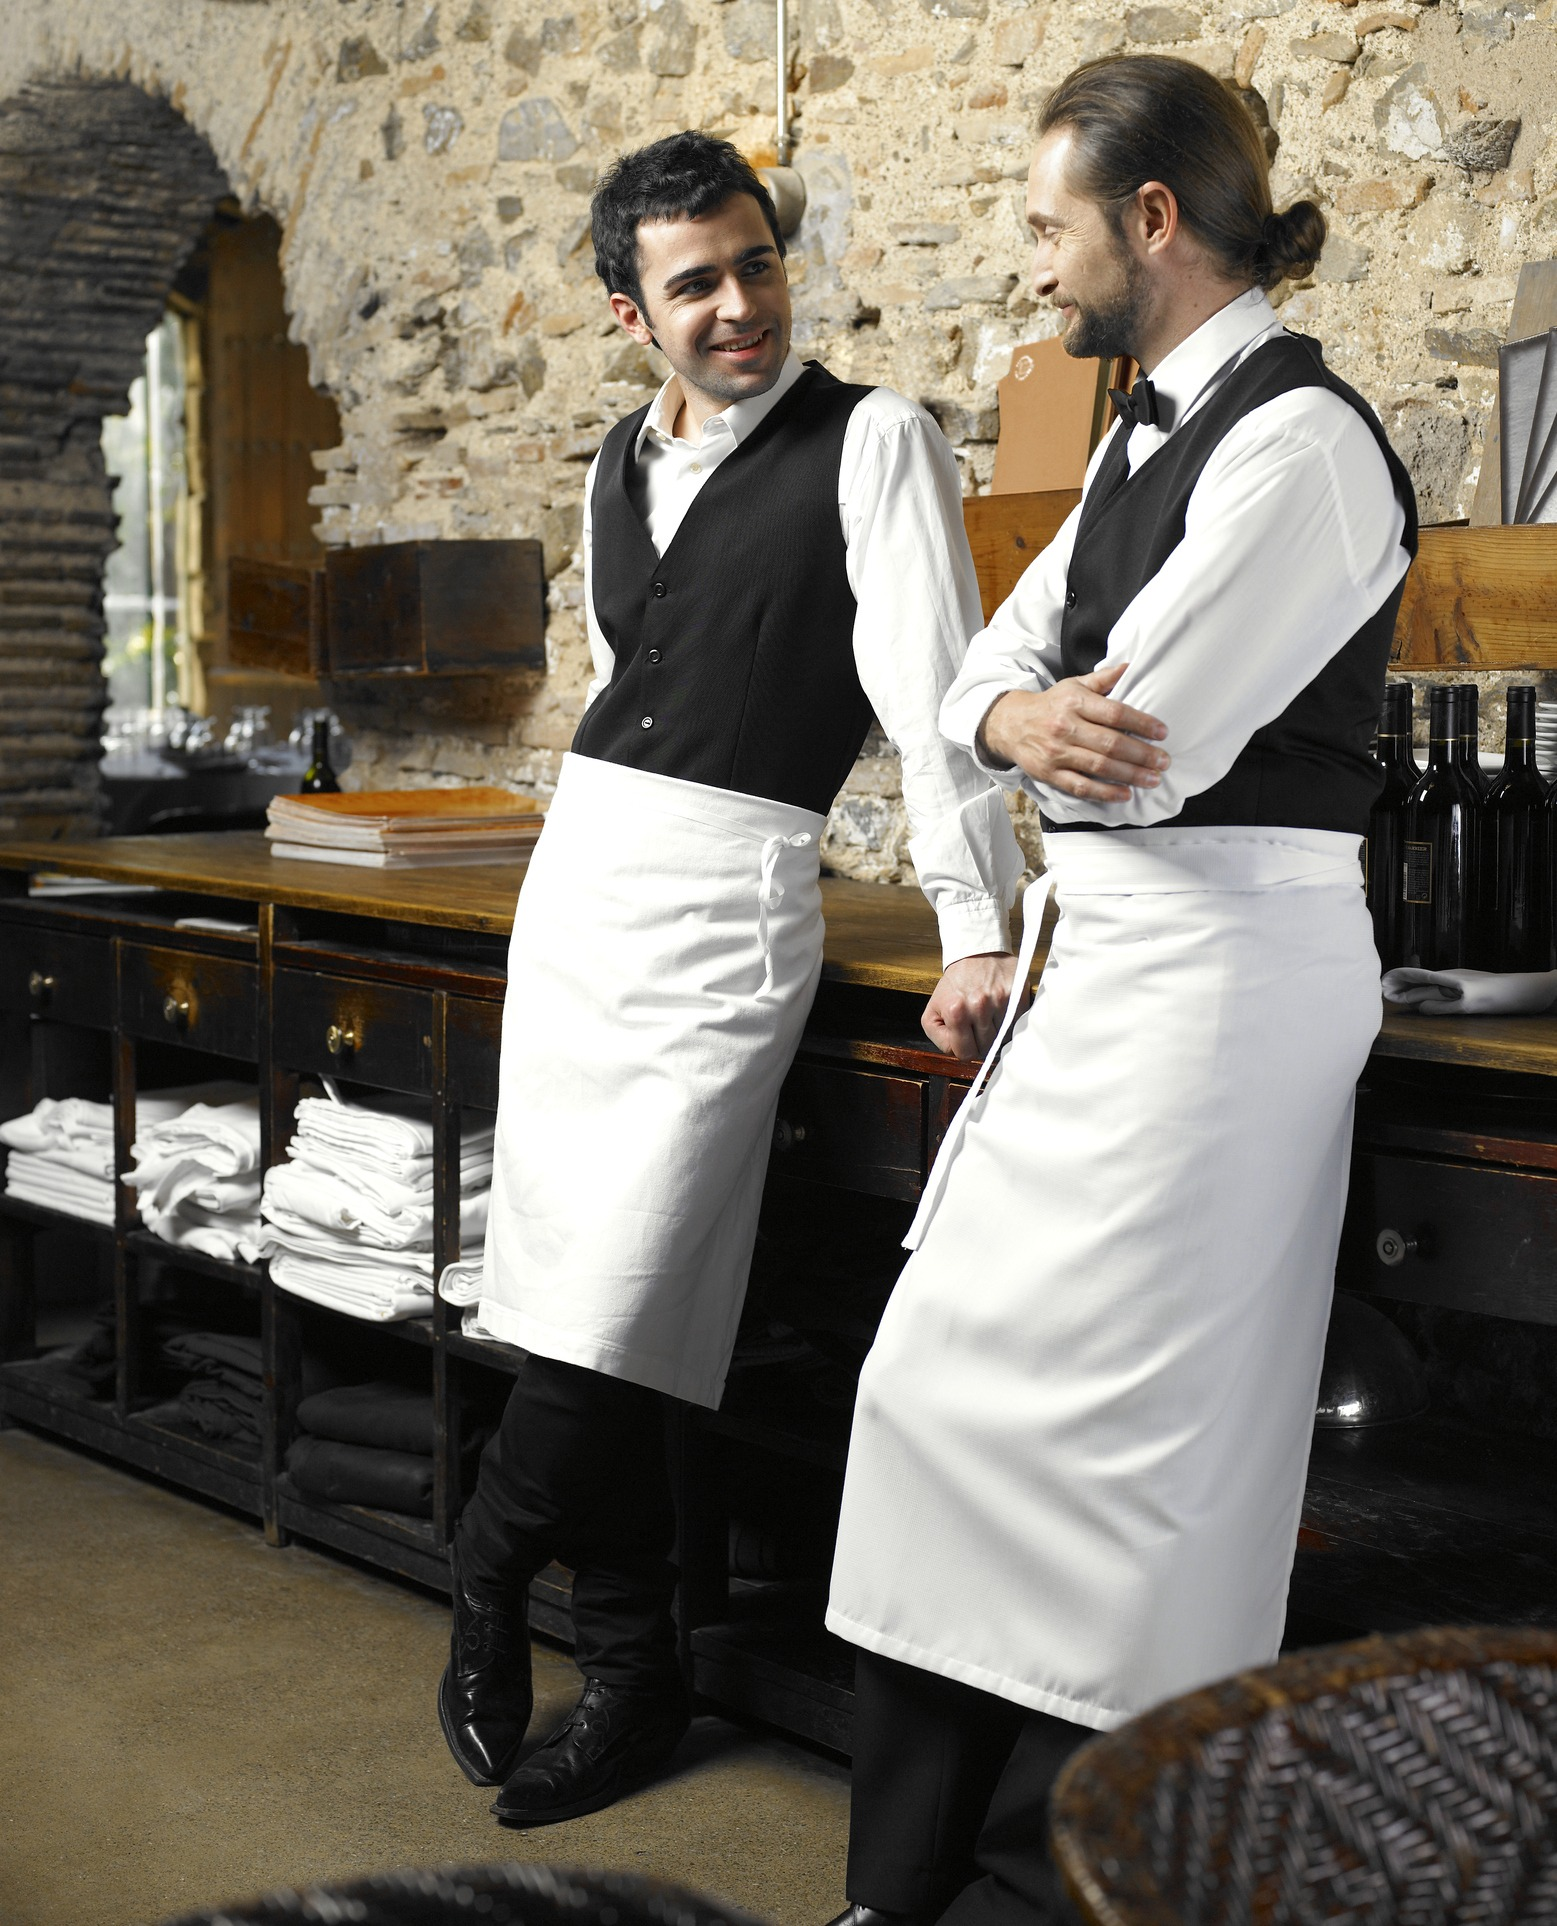 Two waiters talking in restaurant